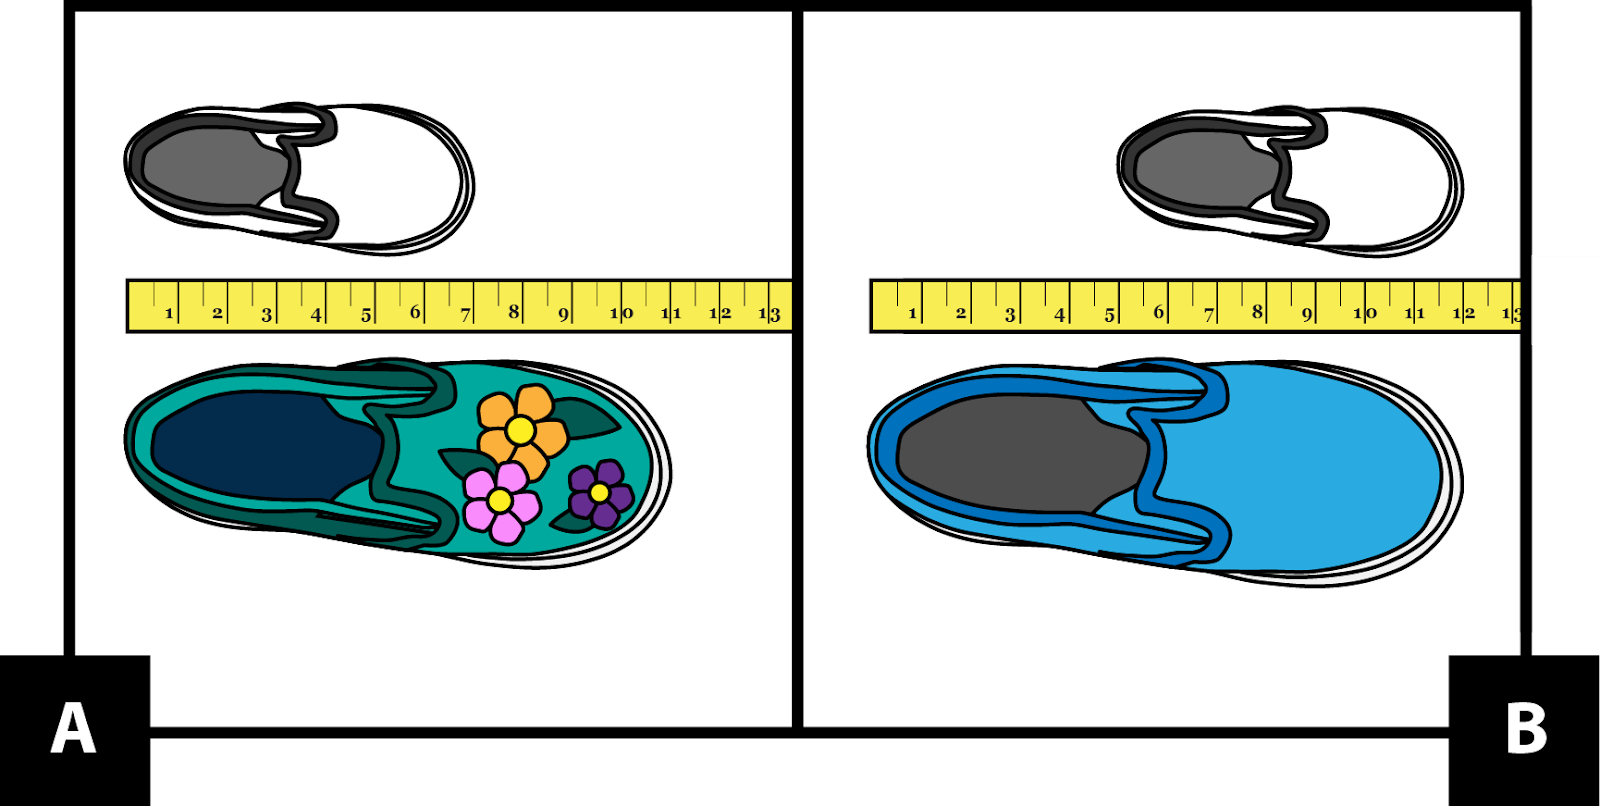 A. shows a kid shoe measuring from 0 to 7 inches above a tape measure. An adult shoe measuring from 0 to 11 inches is below the tape measure. B. shows a kid shoe measuring from 5 to 12 inches above a tape measure. An adult shoe measuring from 0 to 12 inches is below the tape measure.